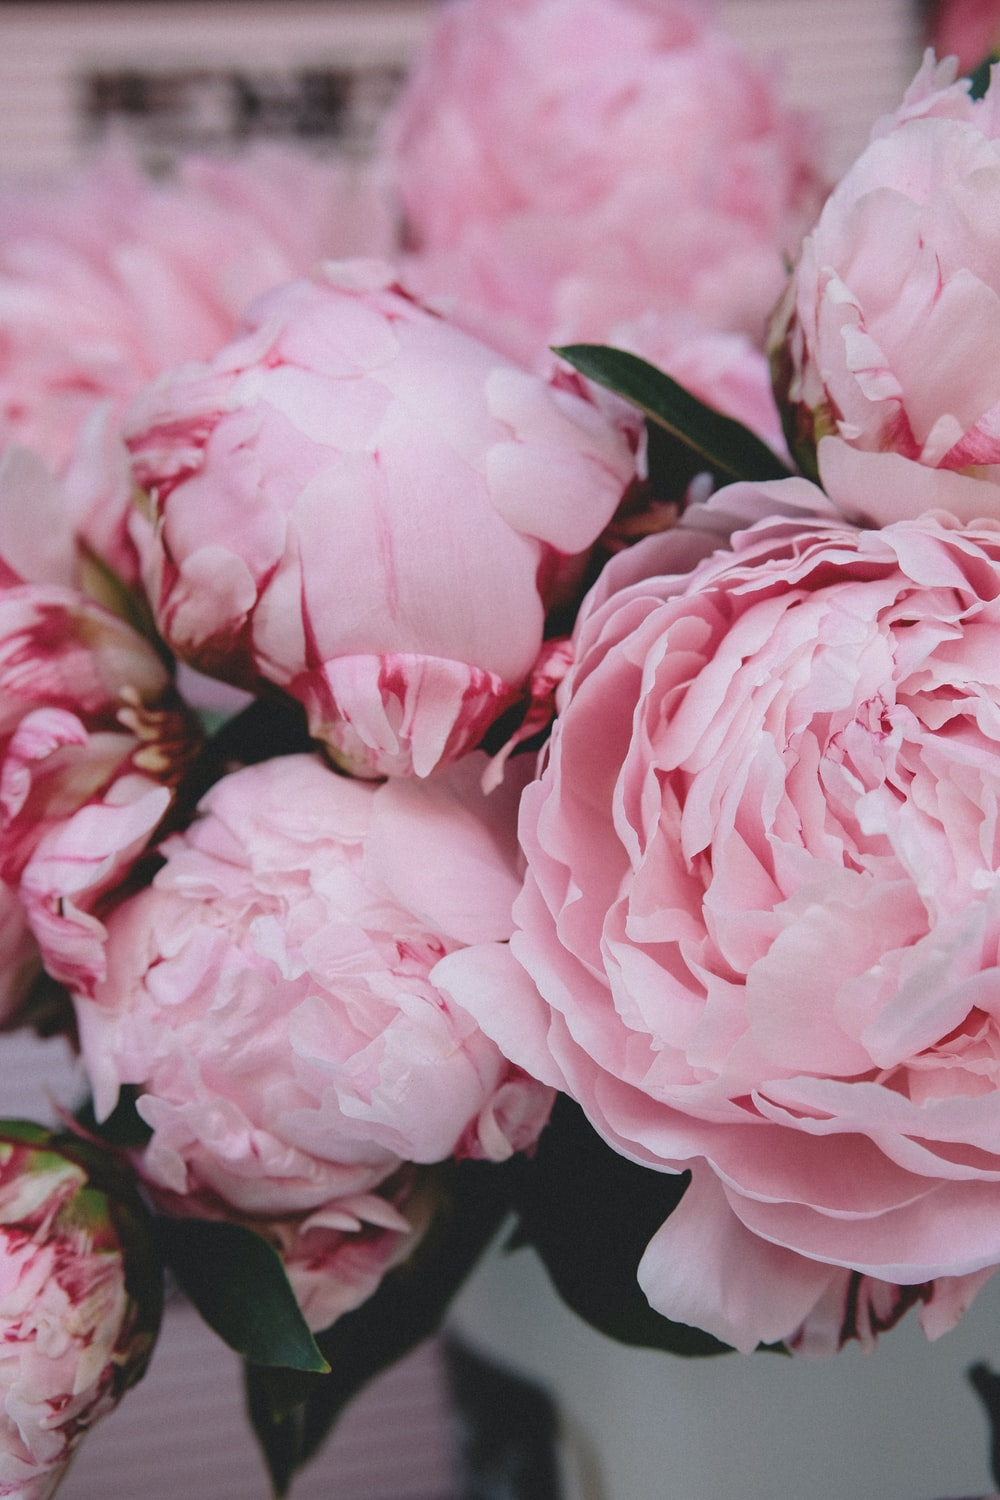 Peony Pictures Hd Download Free Images Stock Photos On Unsplash